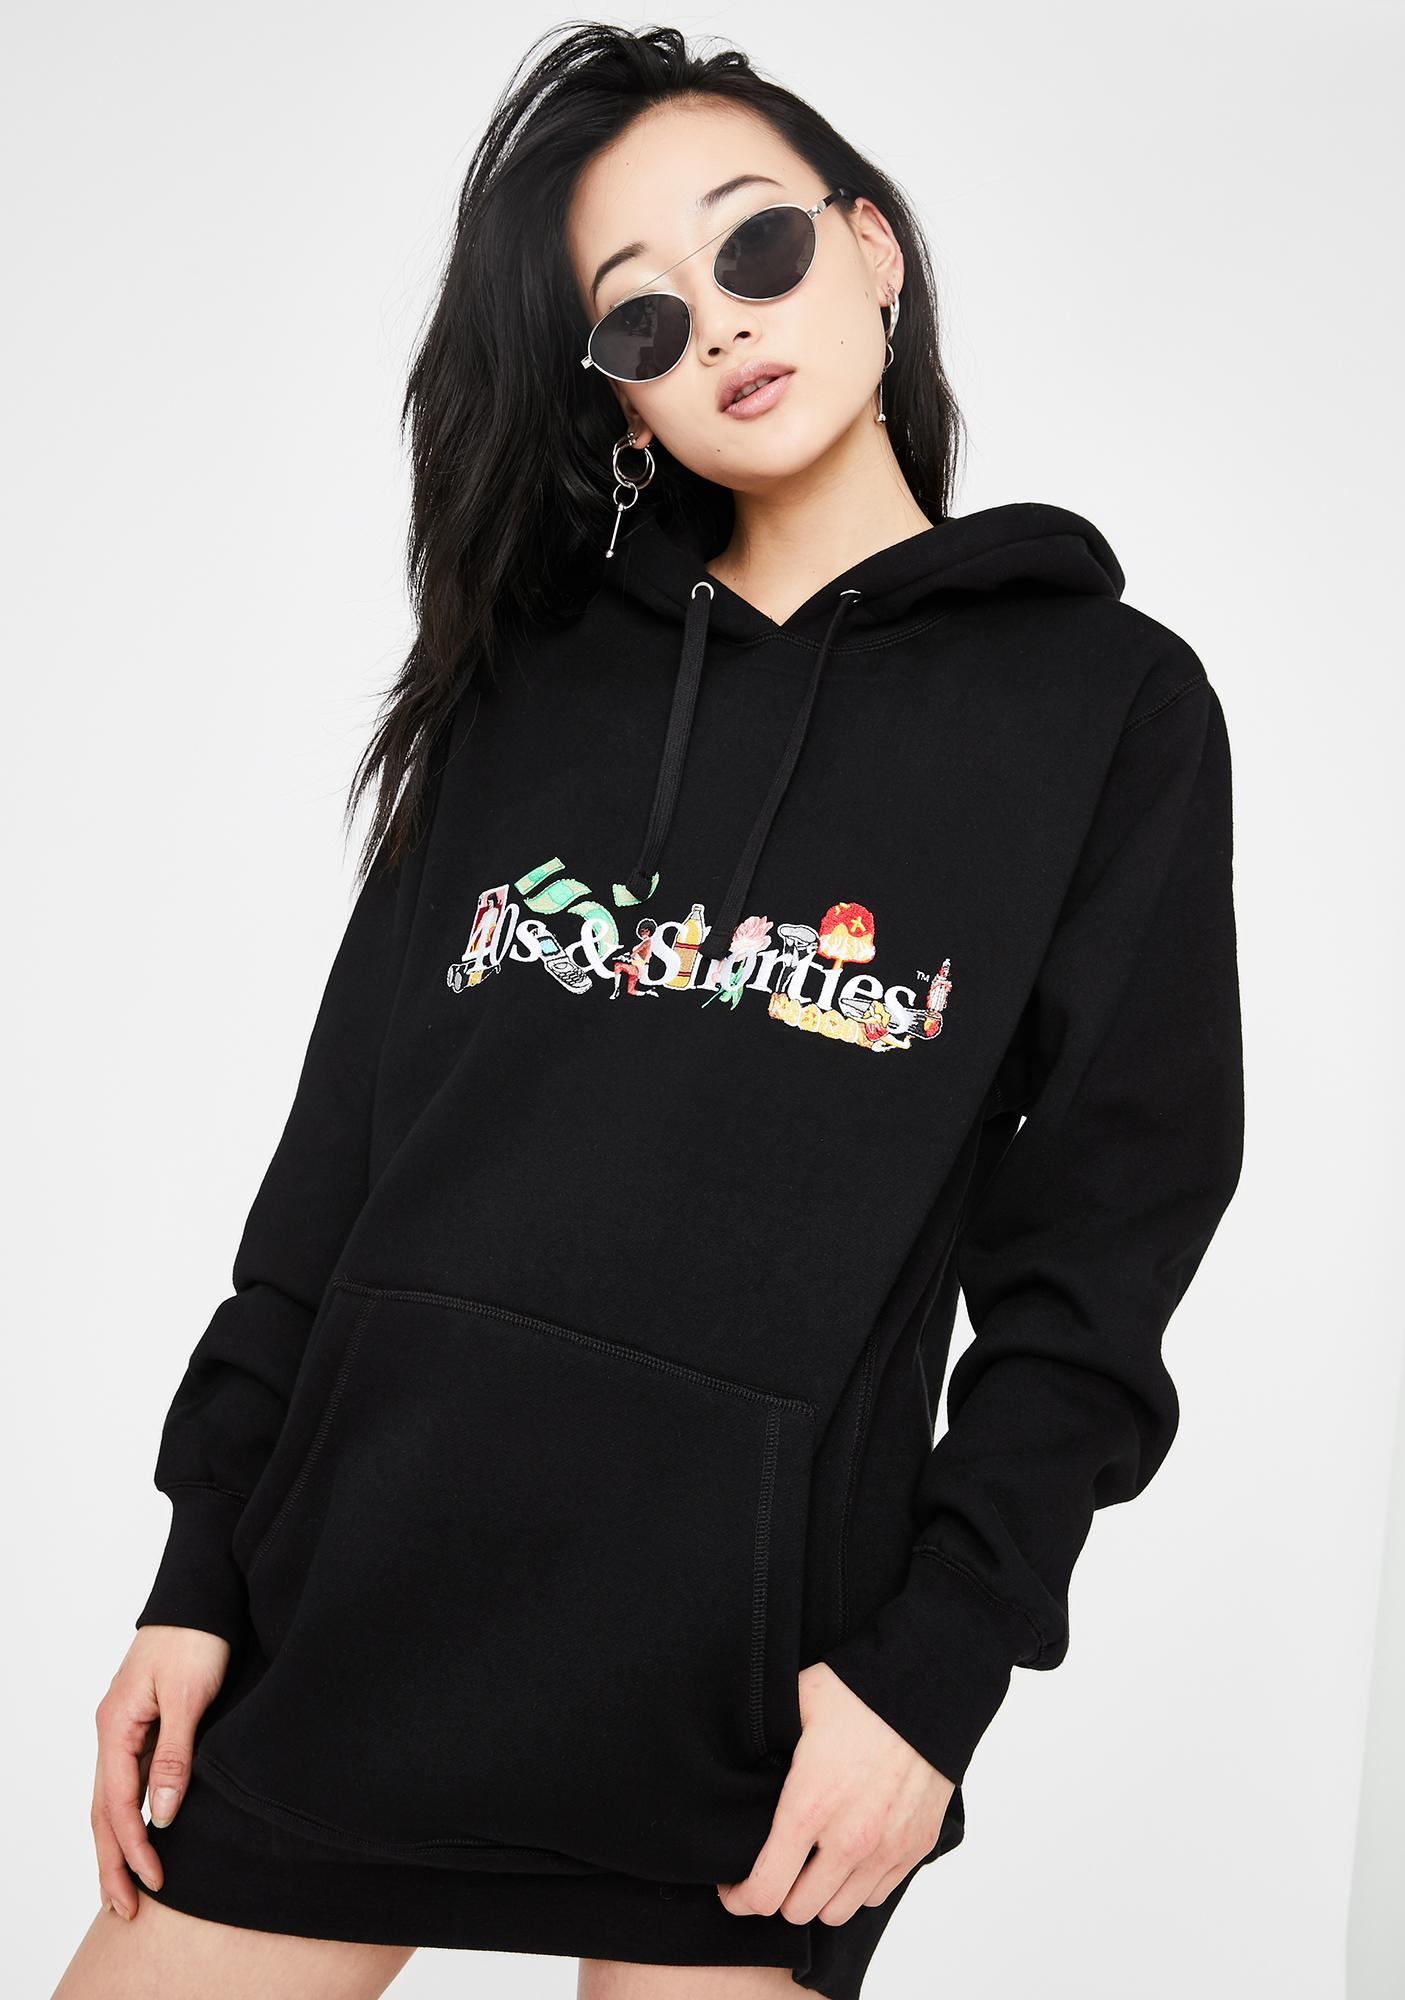 40s & Shorties Life Graphic Hoodie